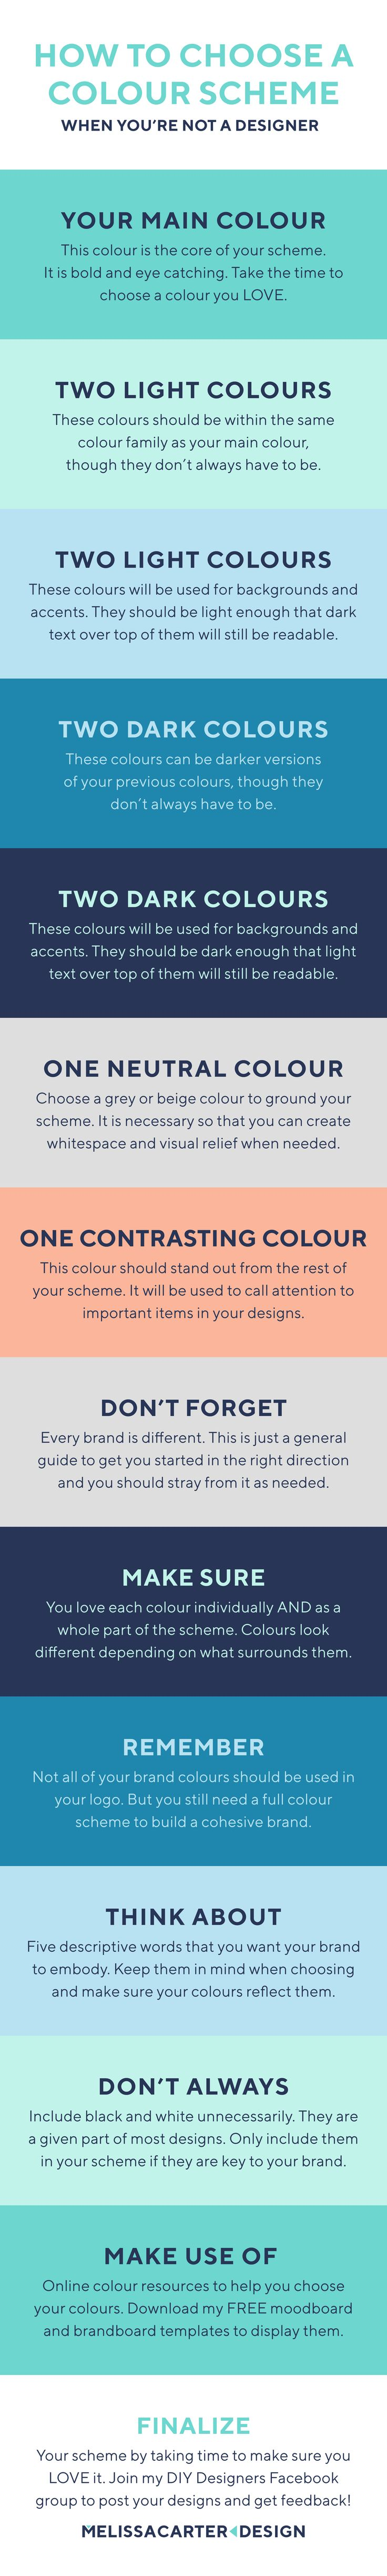 Your colour scheme is the core of your entire visual brand, so it's vital that you choose a good one. Here's how to create a gorgeous scheme on your own.